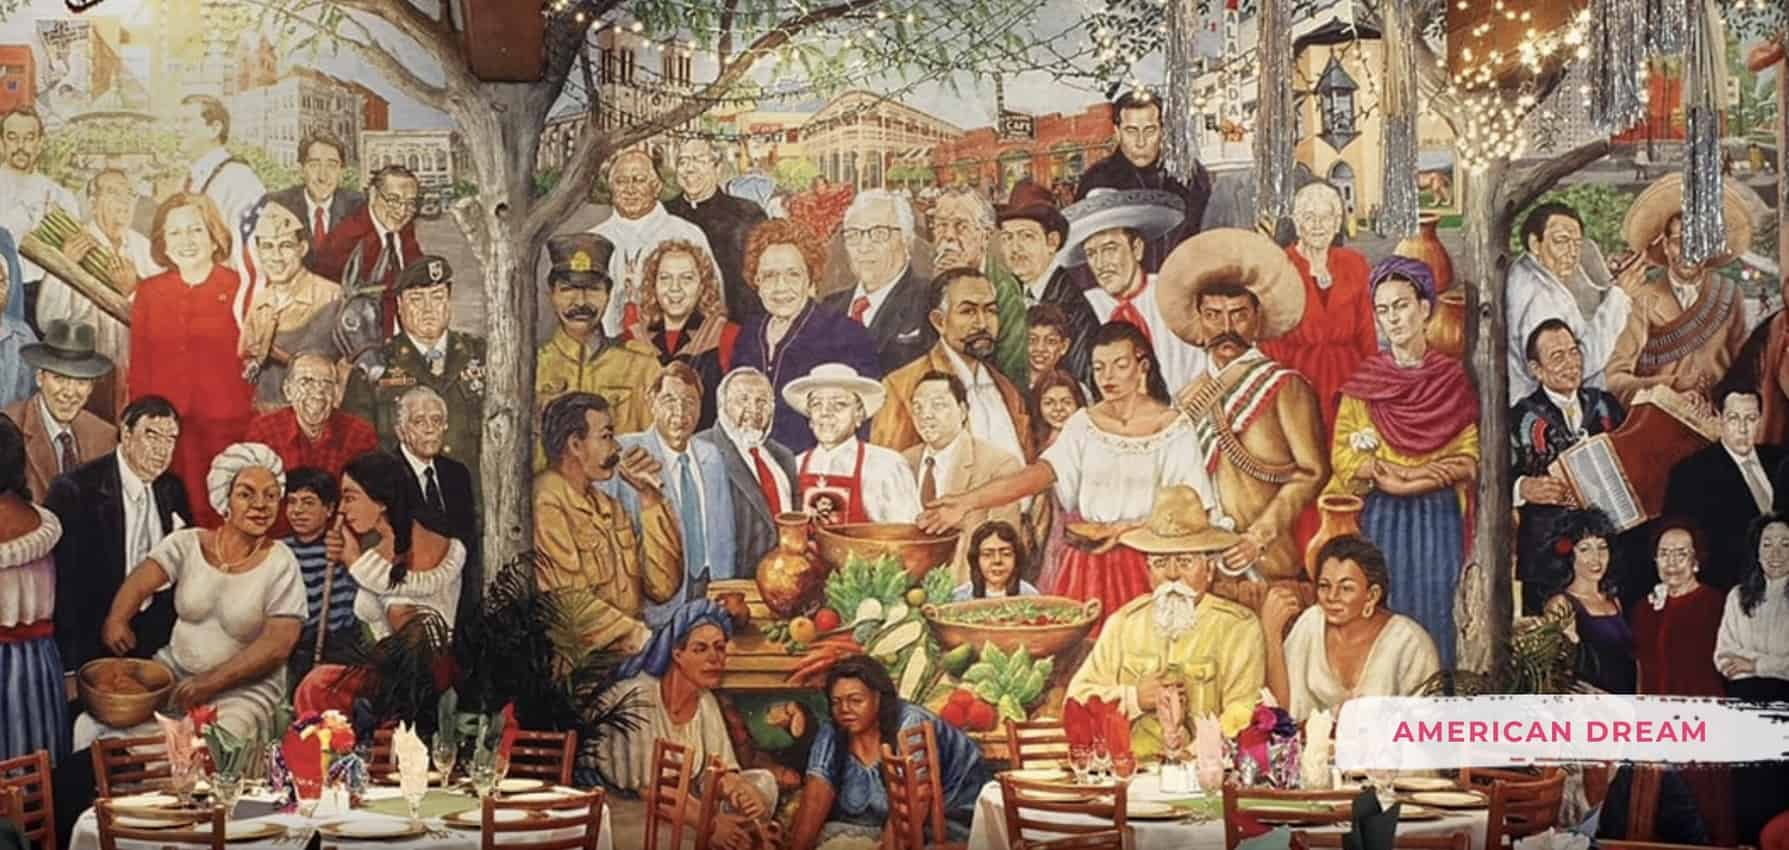 The famous mural at Mi Tierra Cafe, San Antonio, Texas.